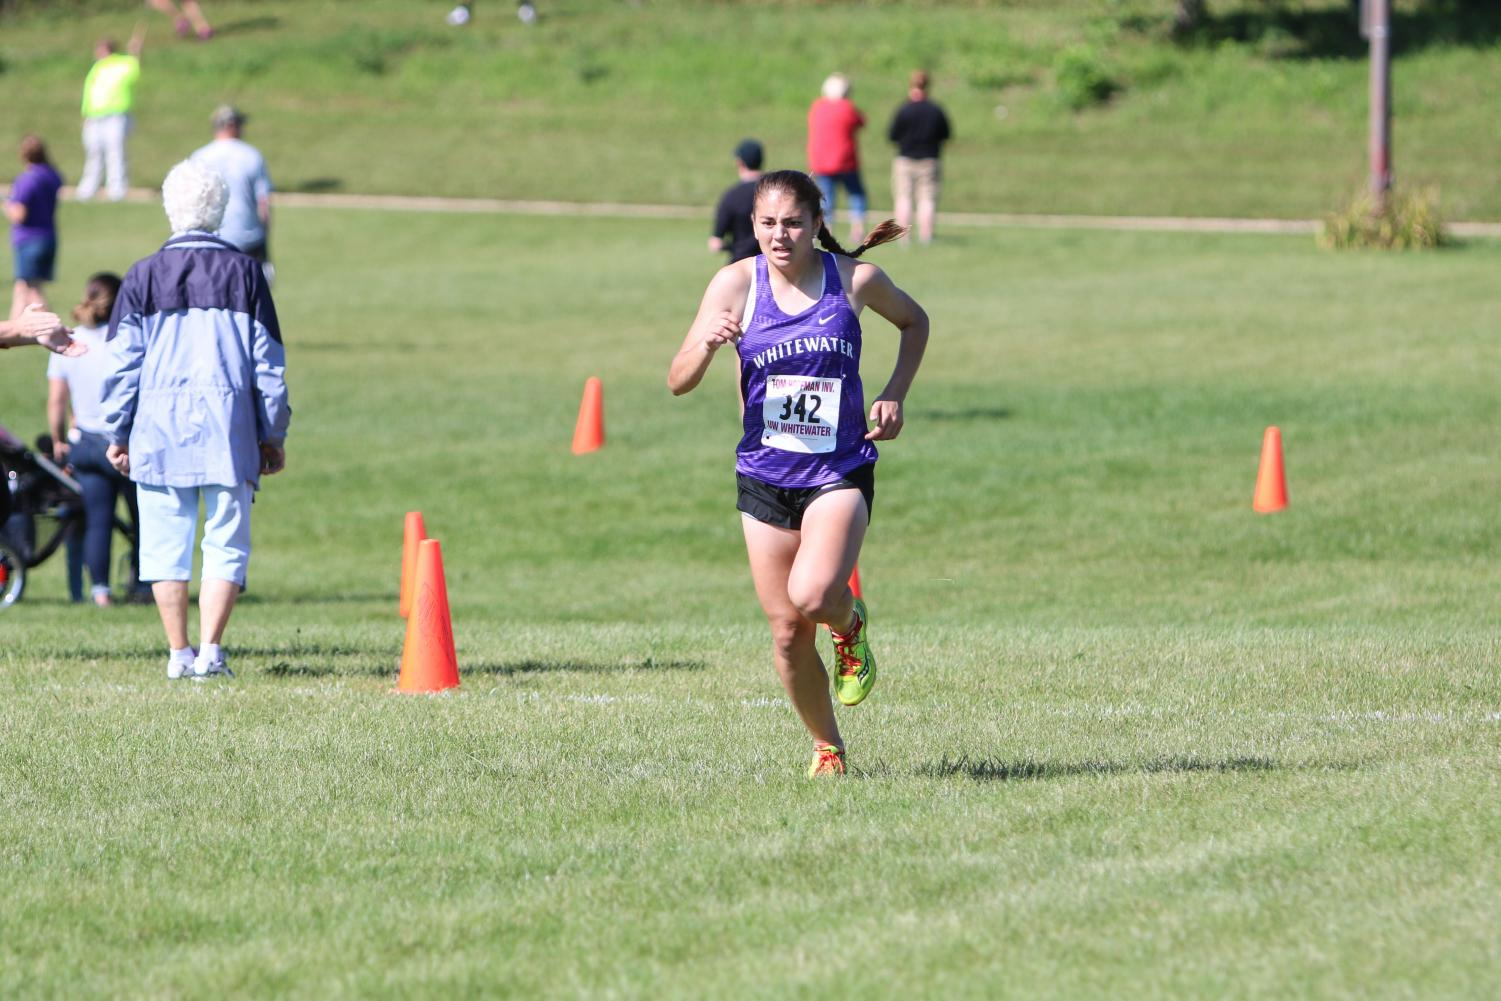 Junior Jessie Braun finishes her race Saturday, Sept. 10 at the Fifth Annual Tom Hoffman Invitational. Braun ran an official time of 24:17.8.